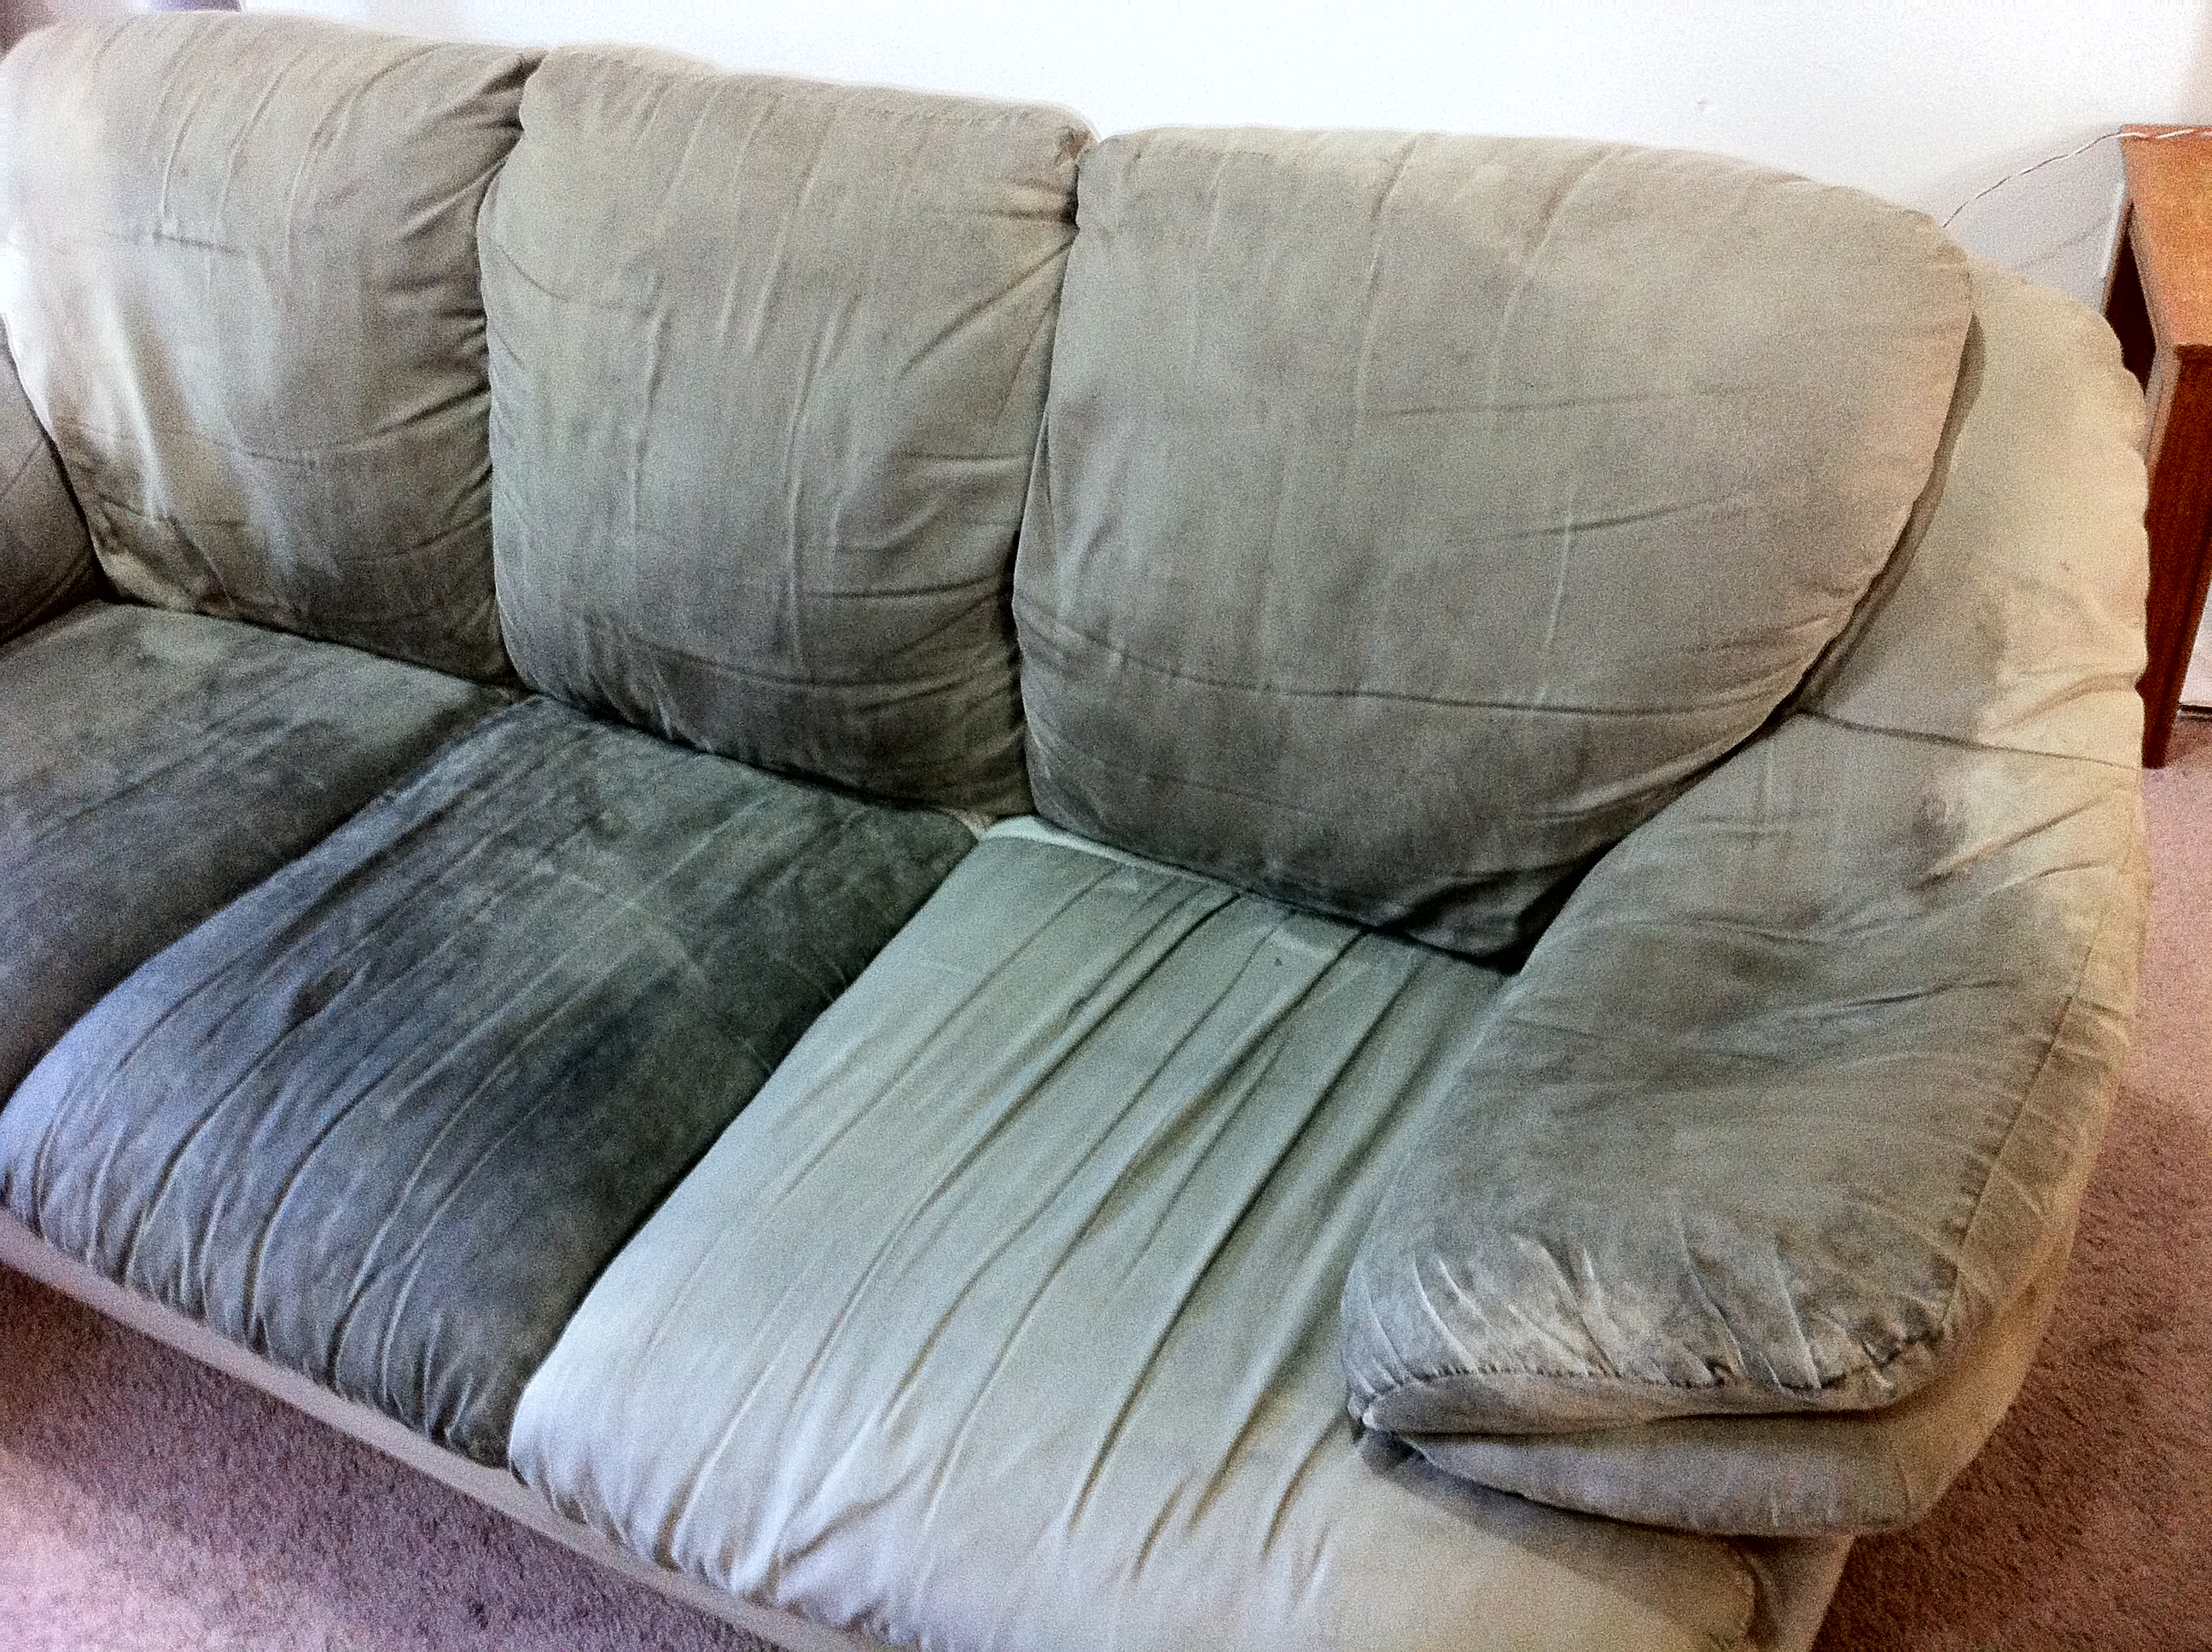 Furniture Upholstery Cleaning Portland Sean39s Carpet Care LLC